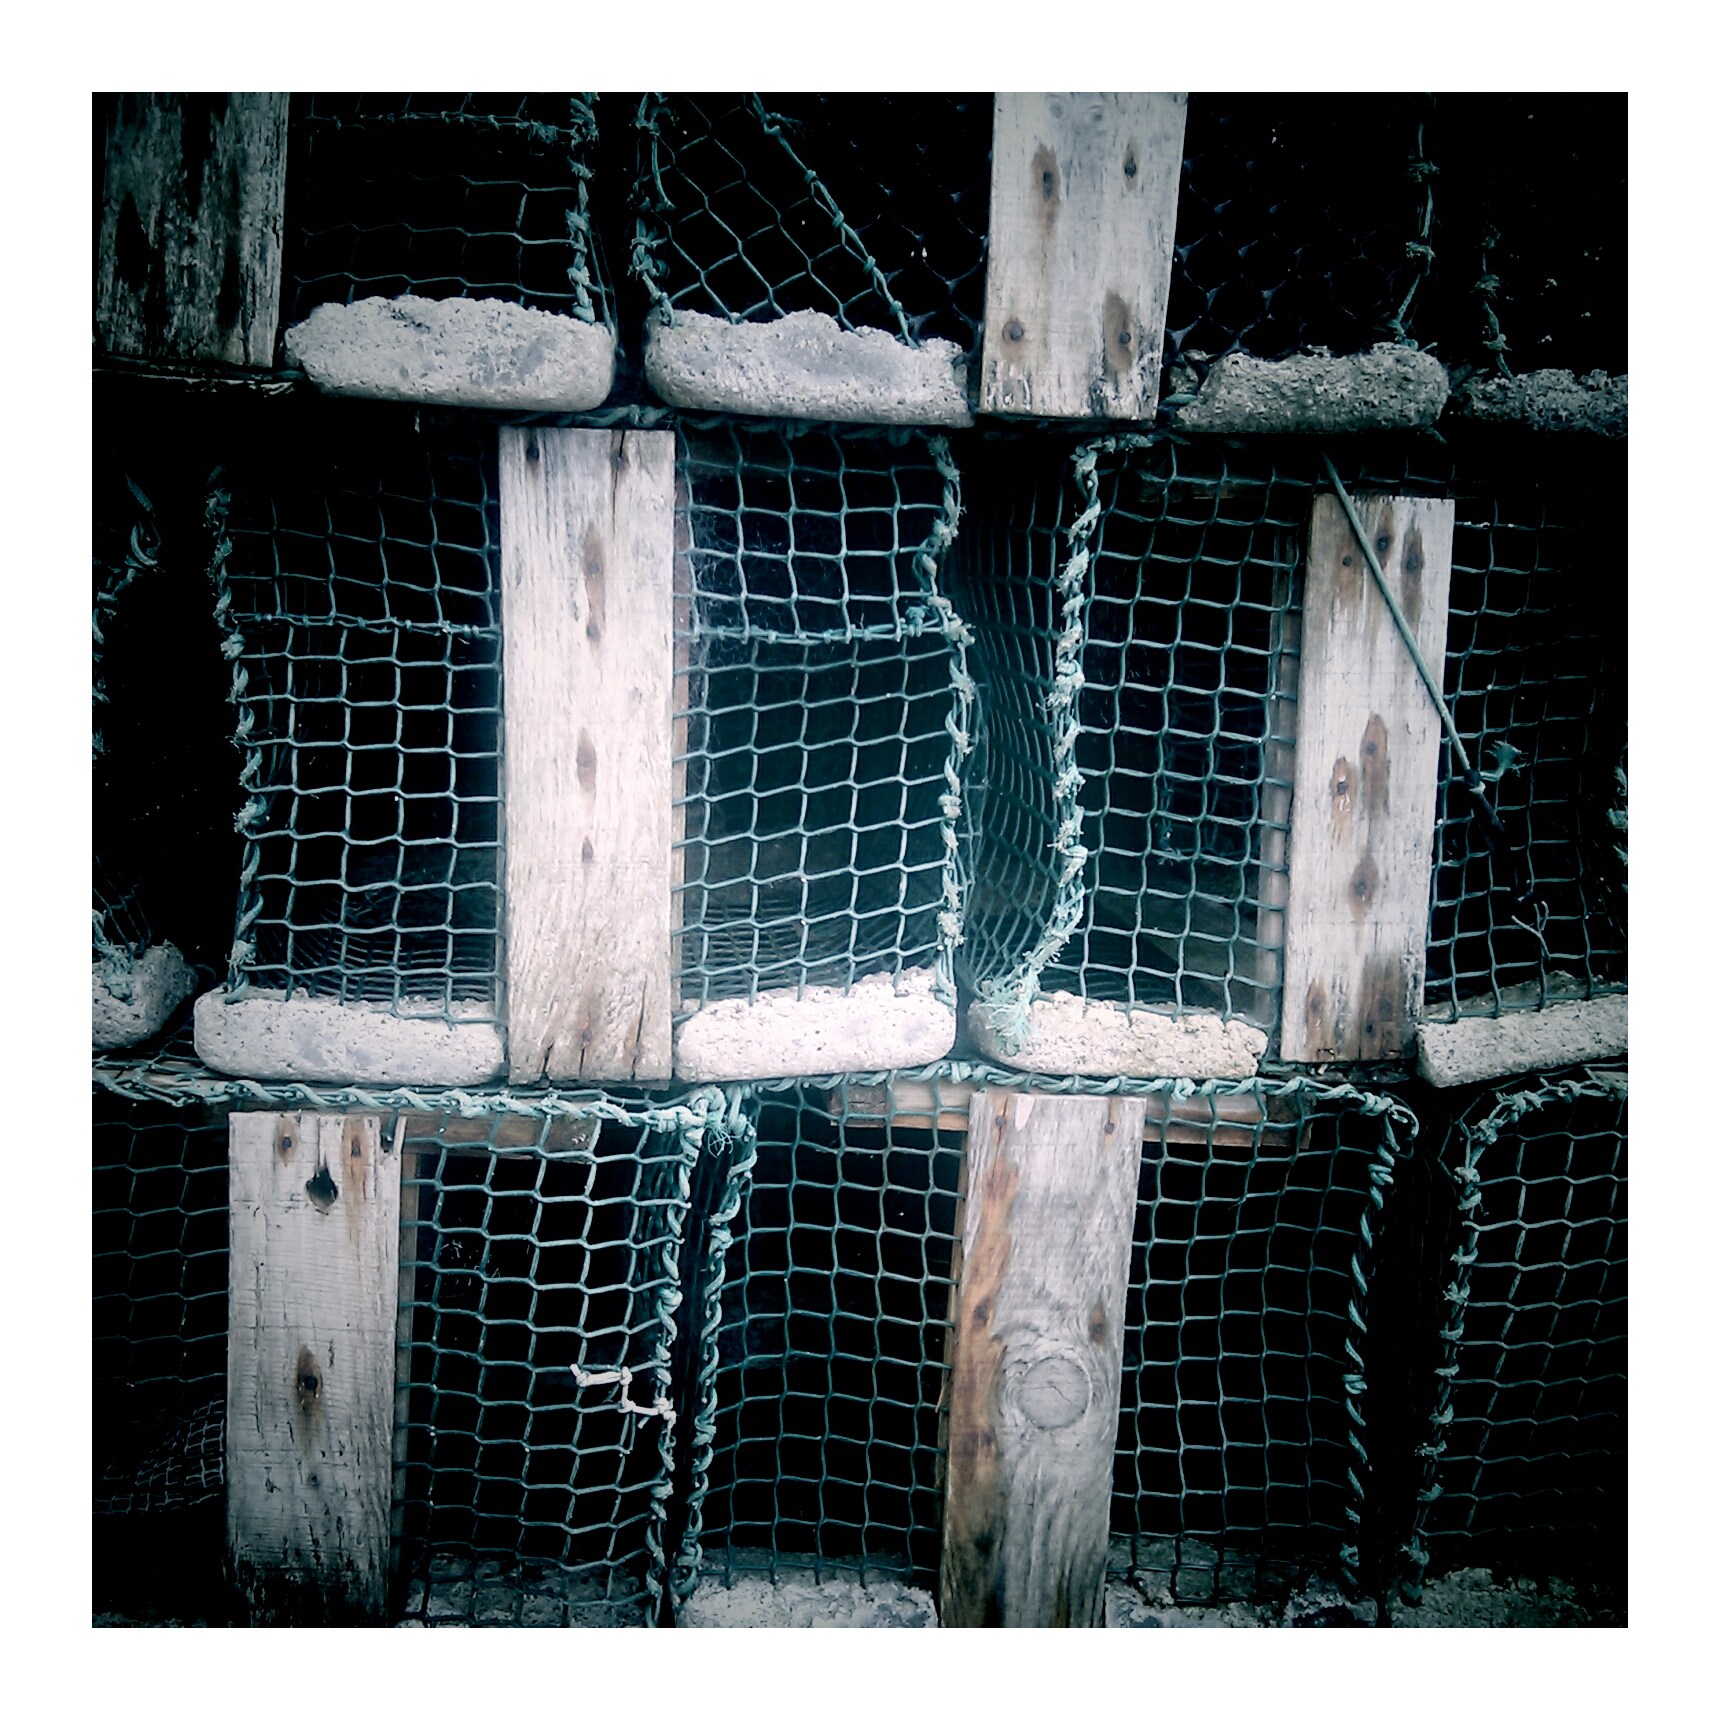 Lobster trap by gallas